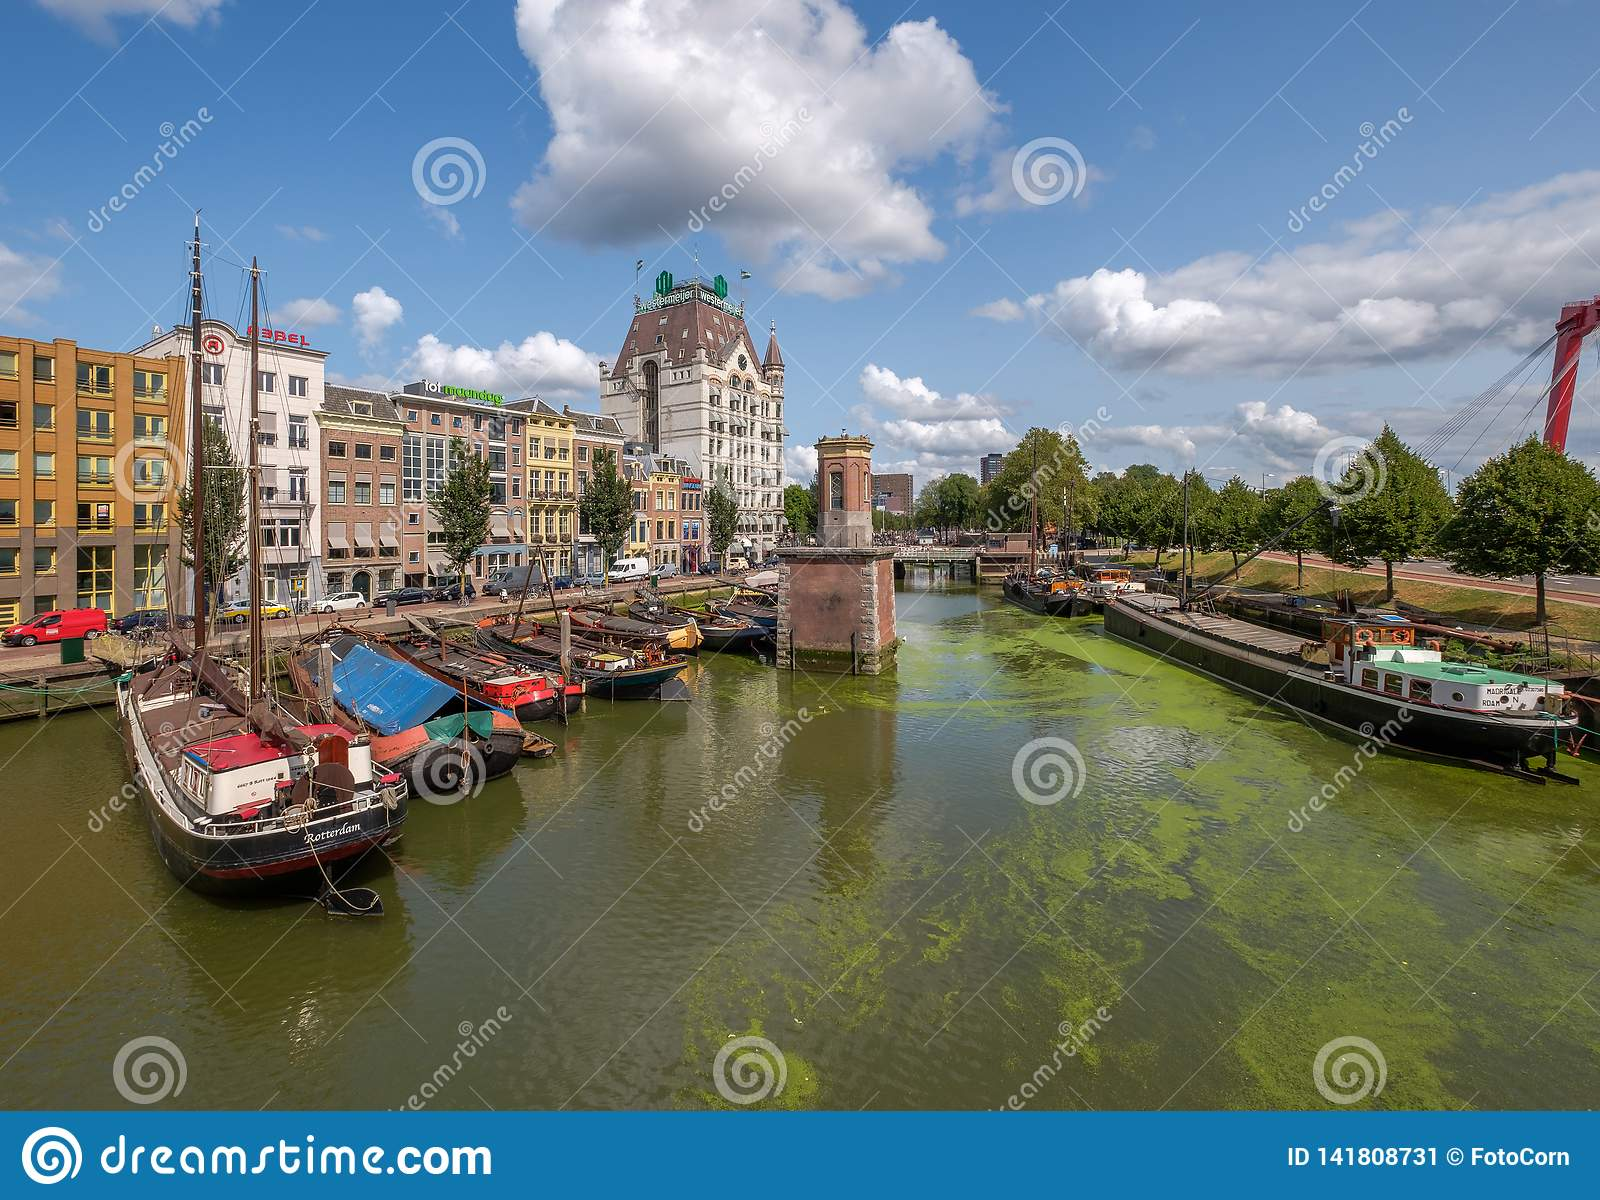 Historical Oude Haven with old ships in city center of Rotterdam